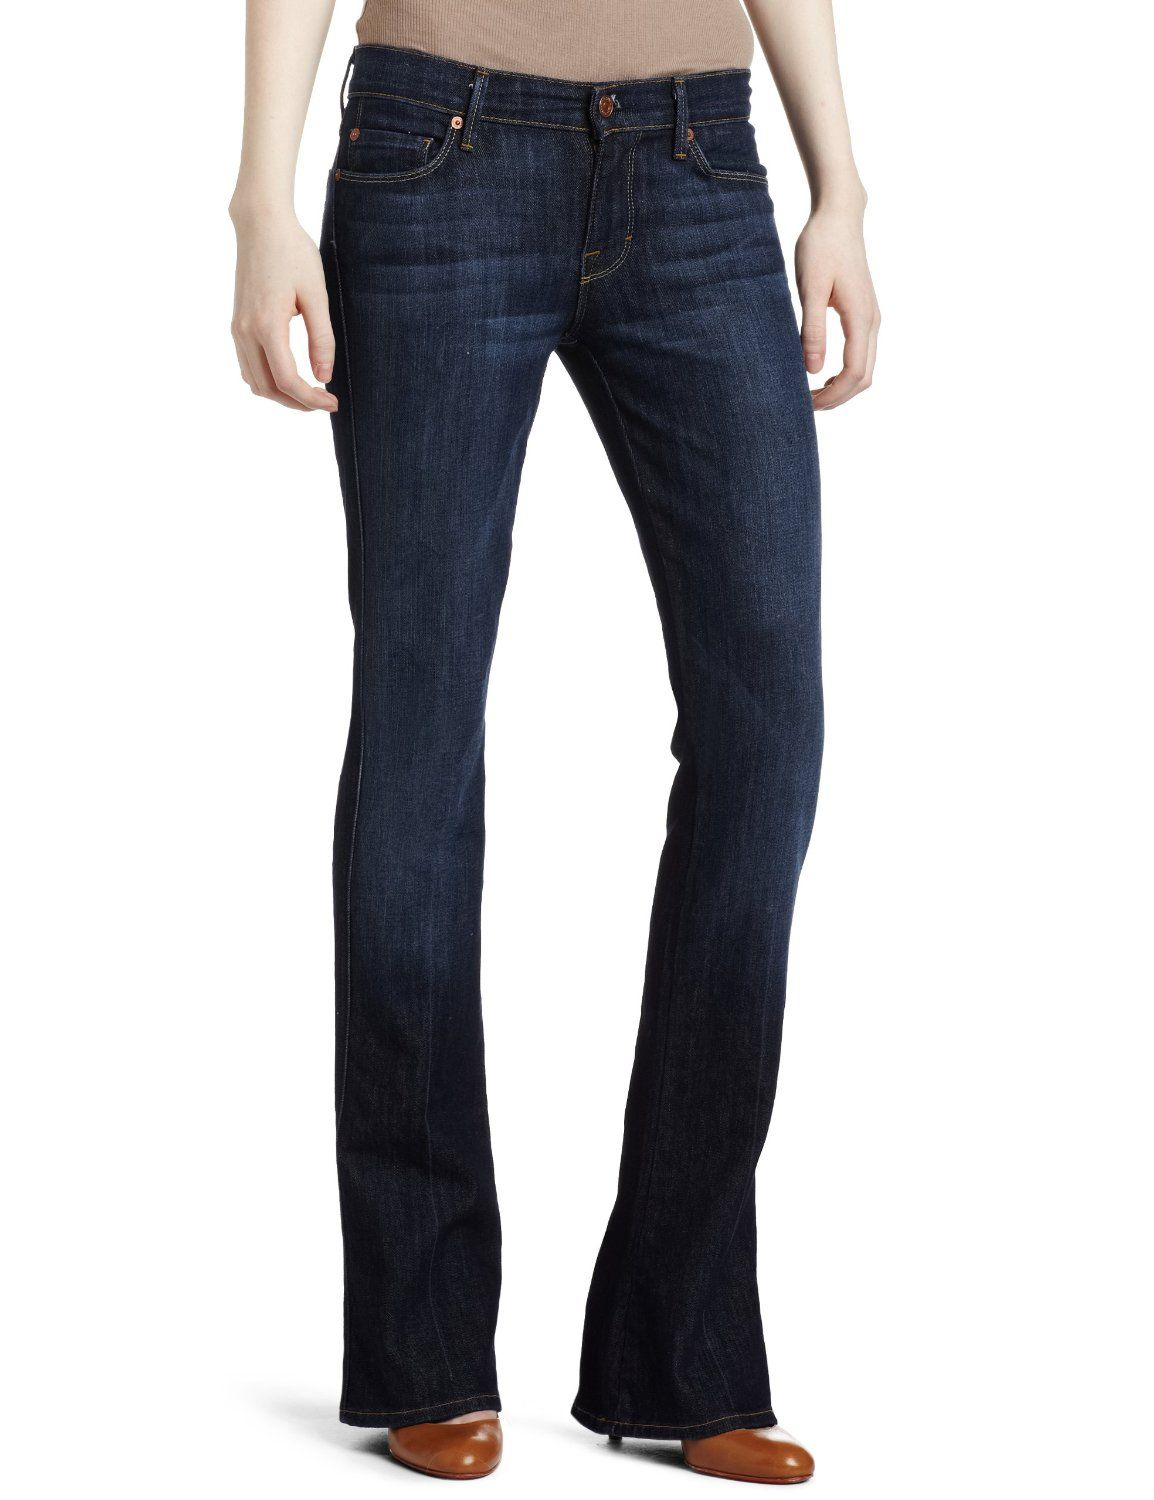 7 For All Mankind Womens Kaylie Slim Fit Jean In Midnight New York